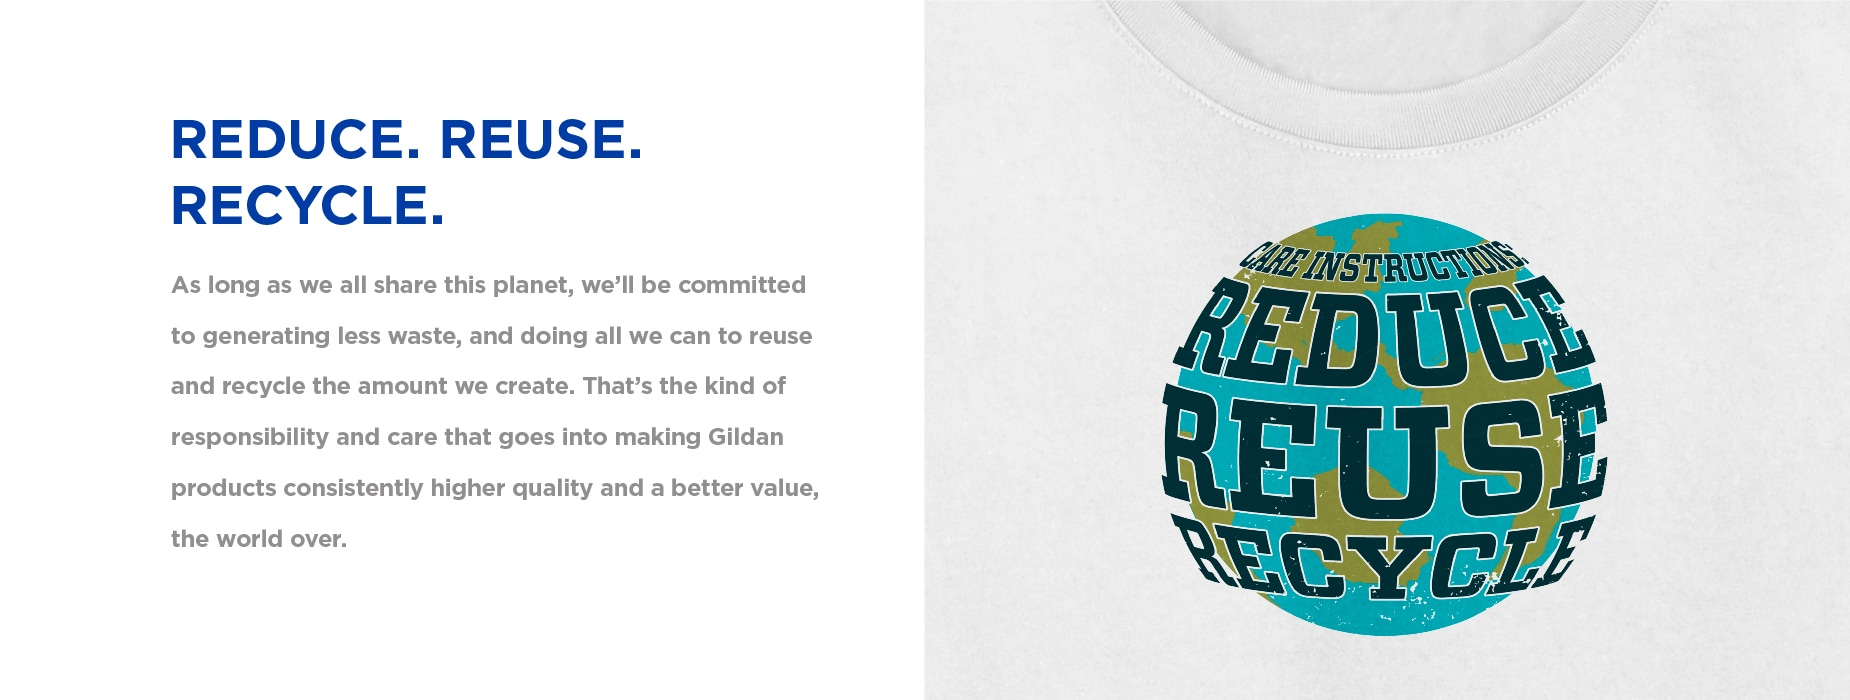 Reduce, Reuse, Recycle | Making Apparel Better™ by Reducing Our Energy Intensity |                 Gildan® USA